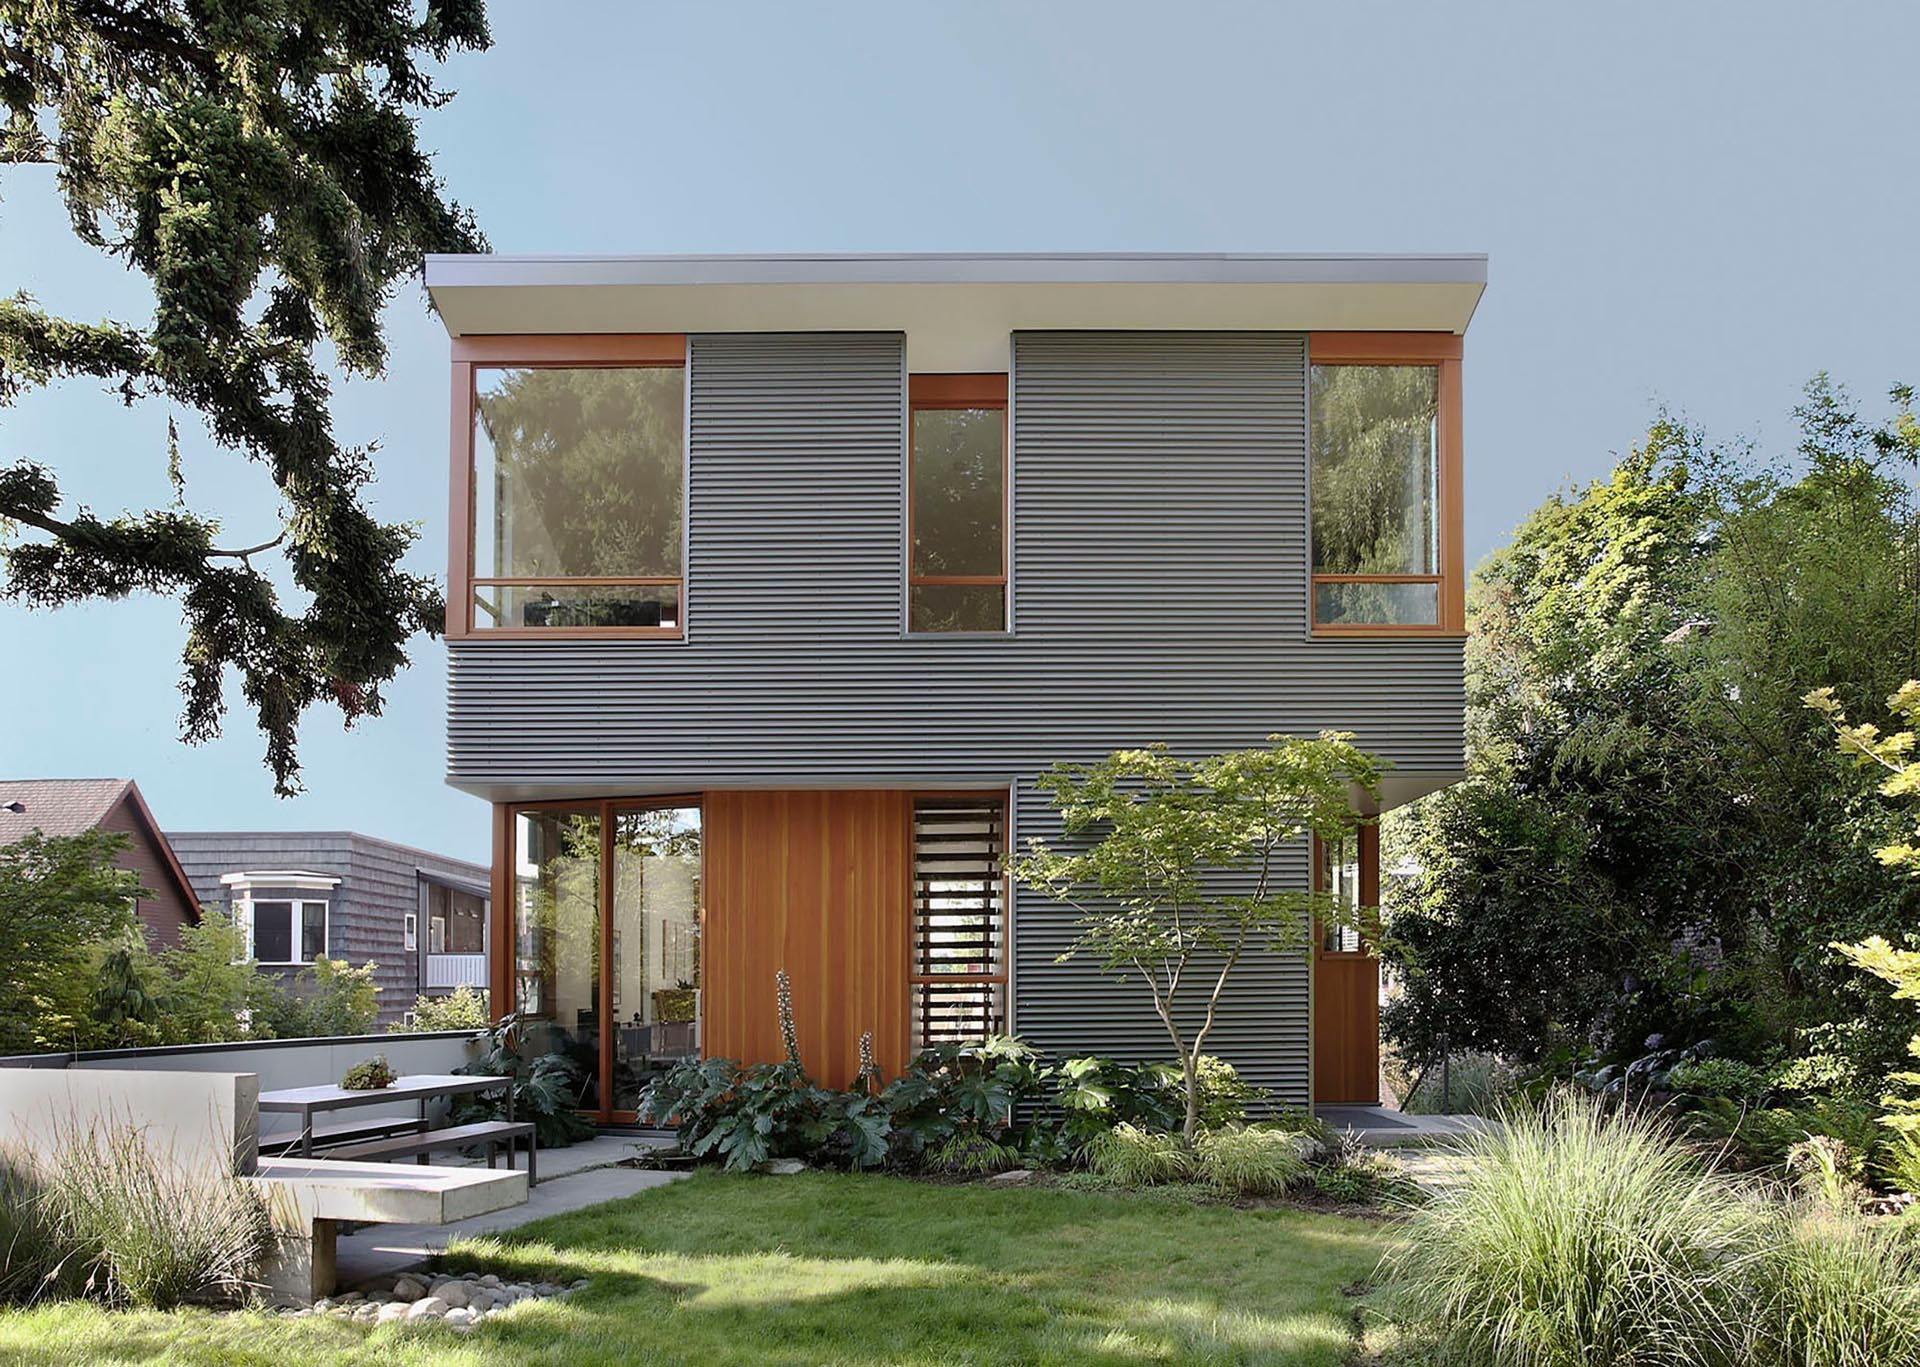 Exterior Siding Idea – Use Corrugated Metal Siding To Add Texture To A House